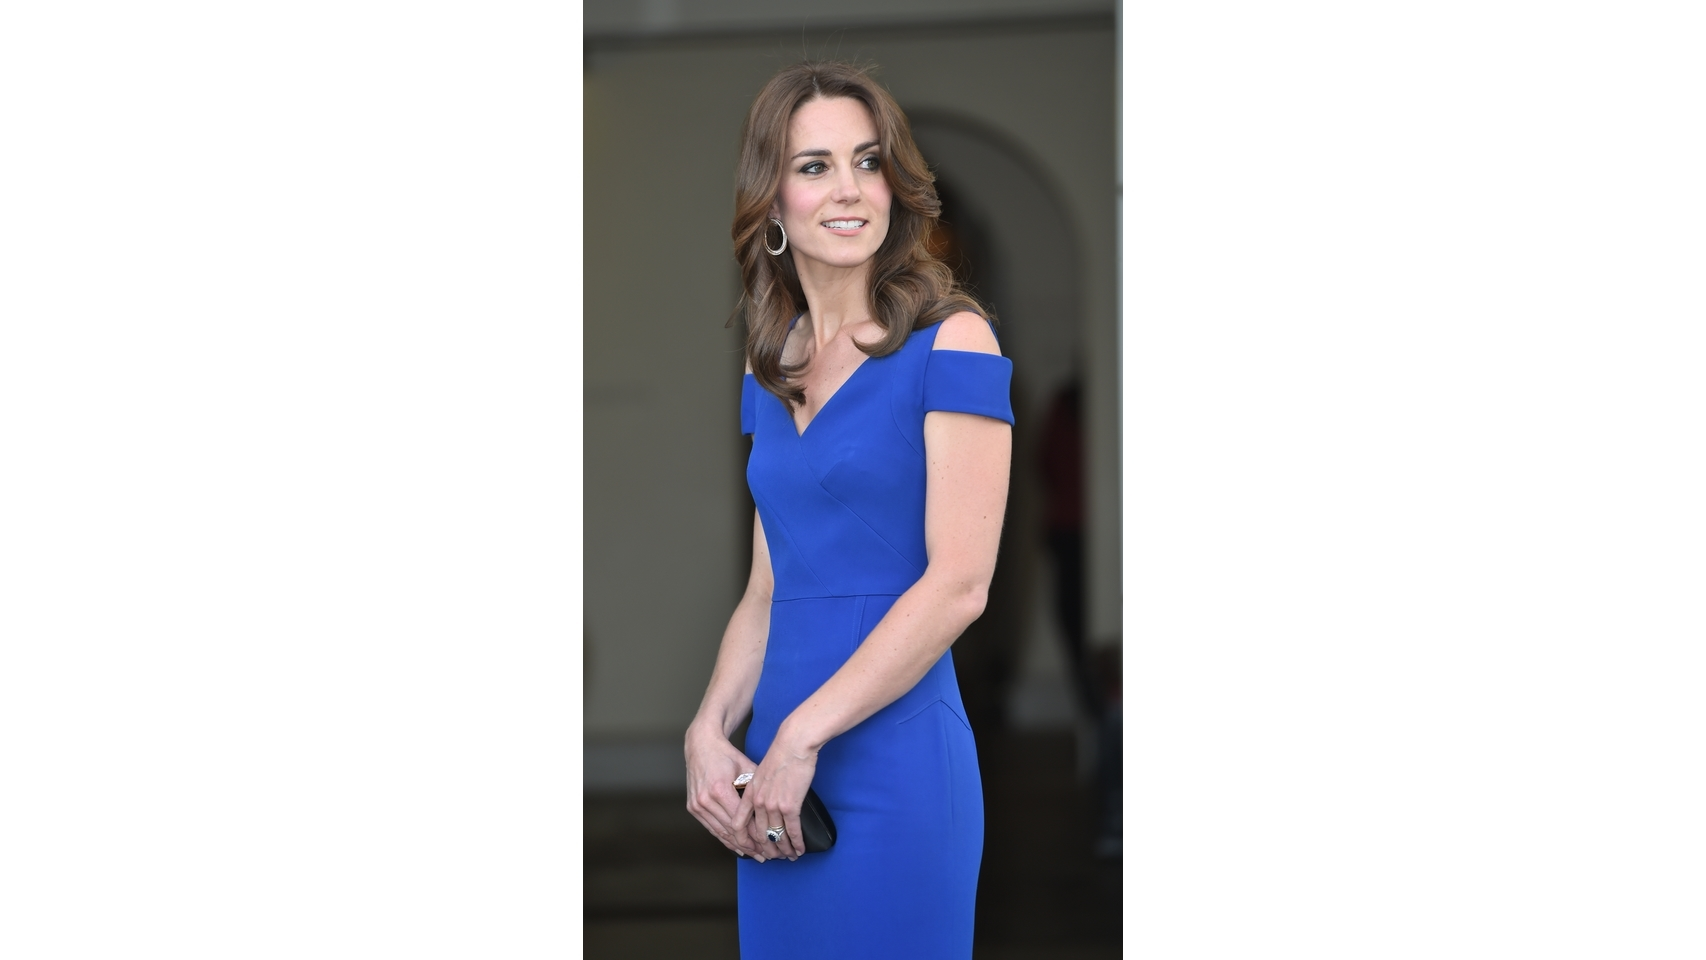 Kate Middleton, duquesa de Cambridge,en el 40 aniversario del Sports Aid en el palacio de Kesington.